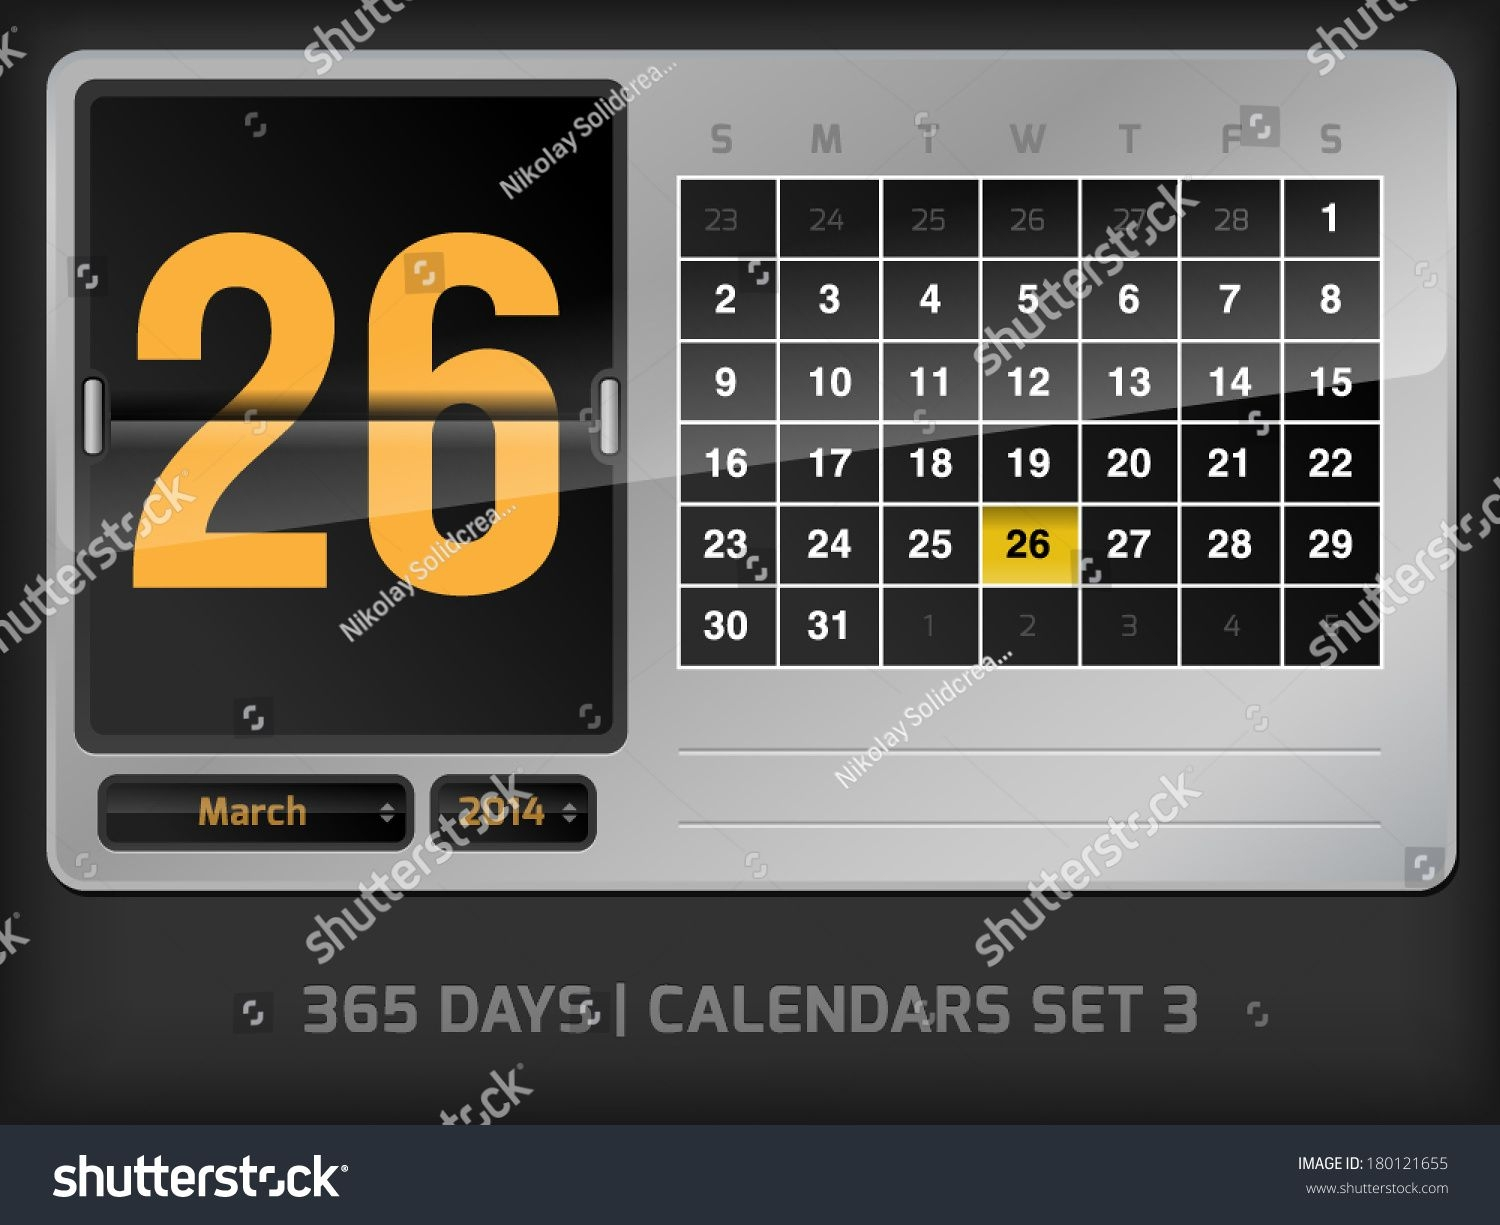 March 26 Daily Vector Counter Calendar Stock Image